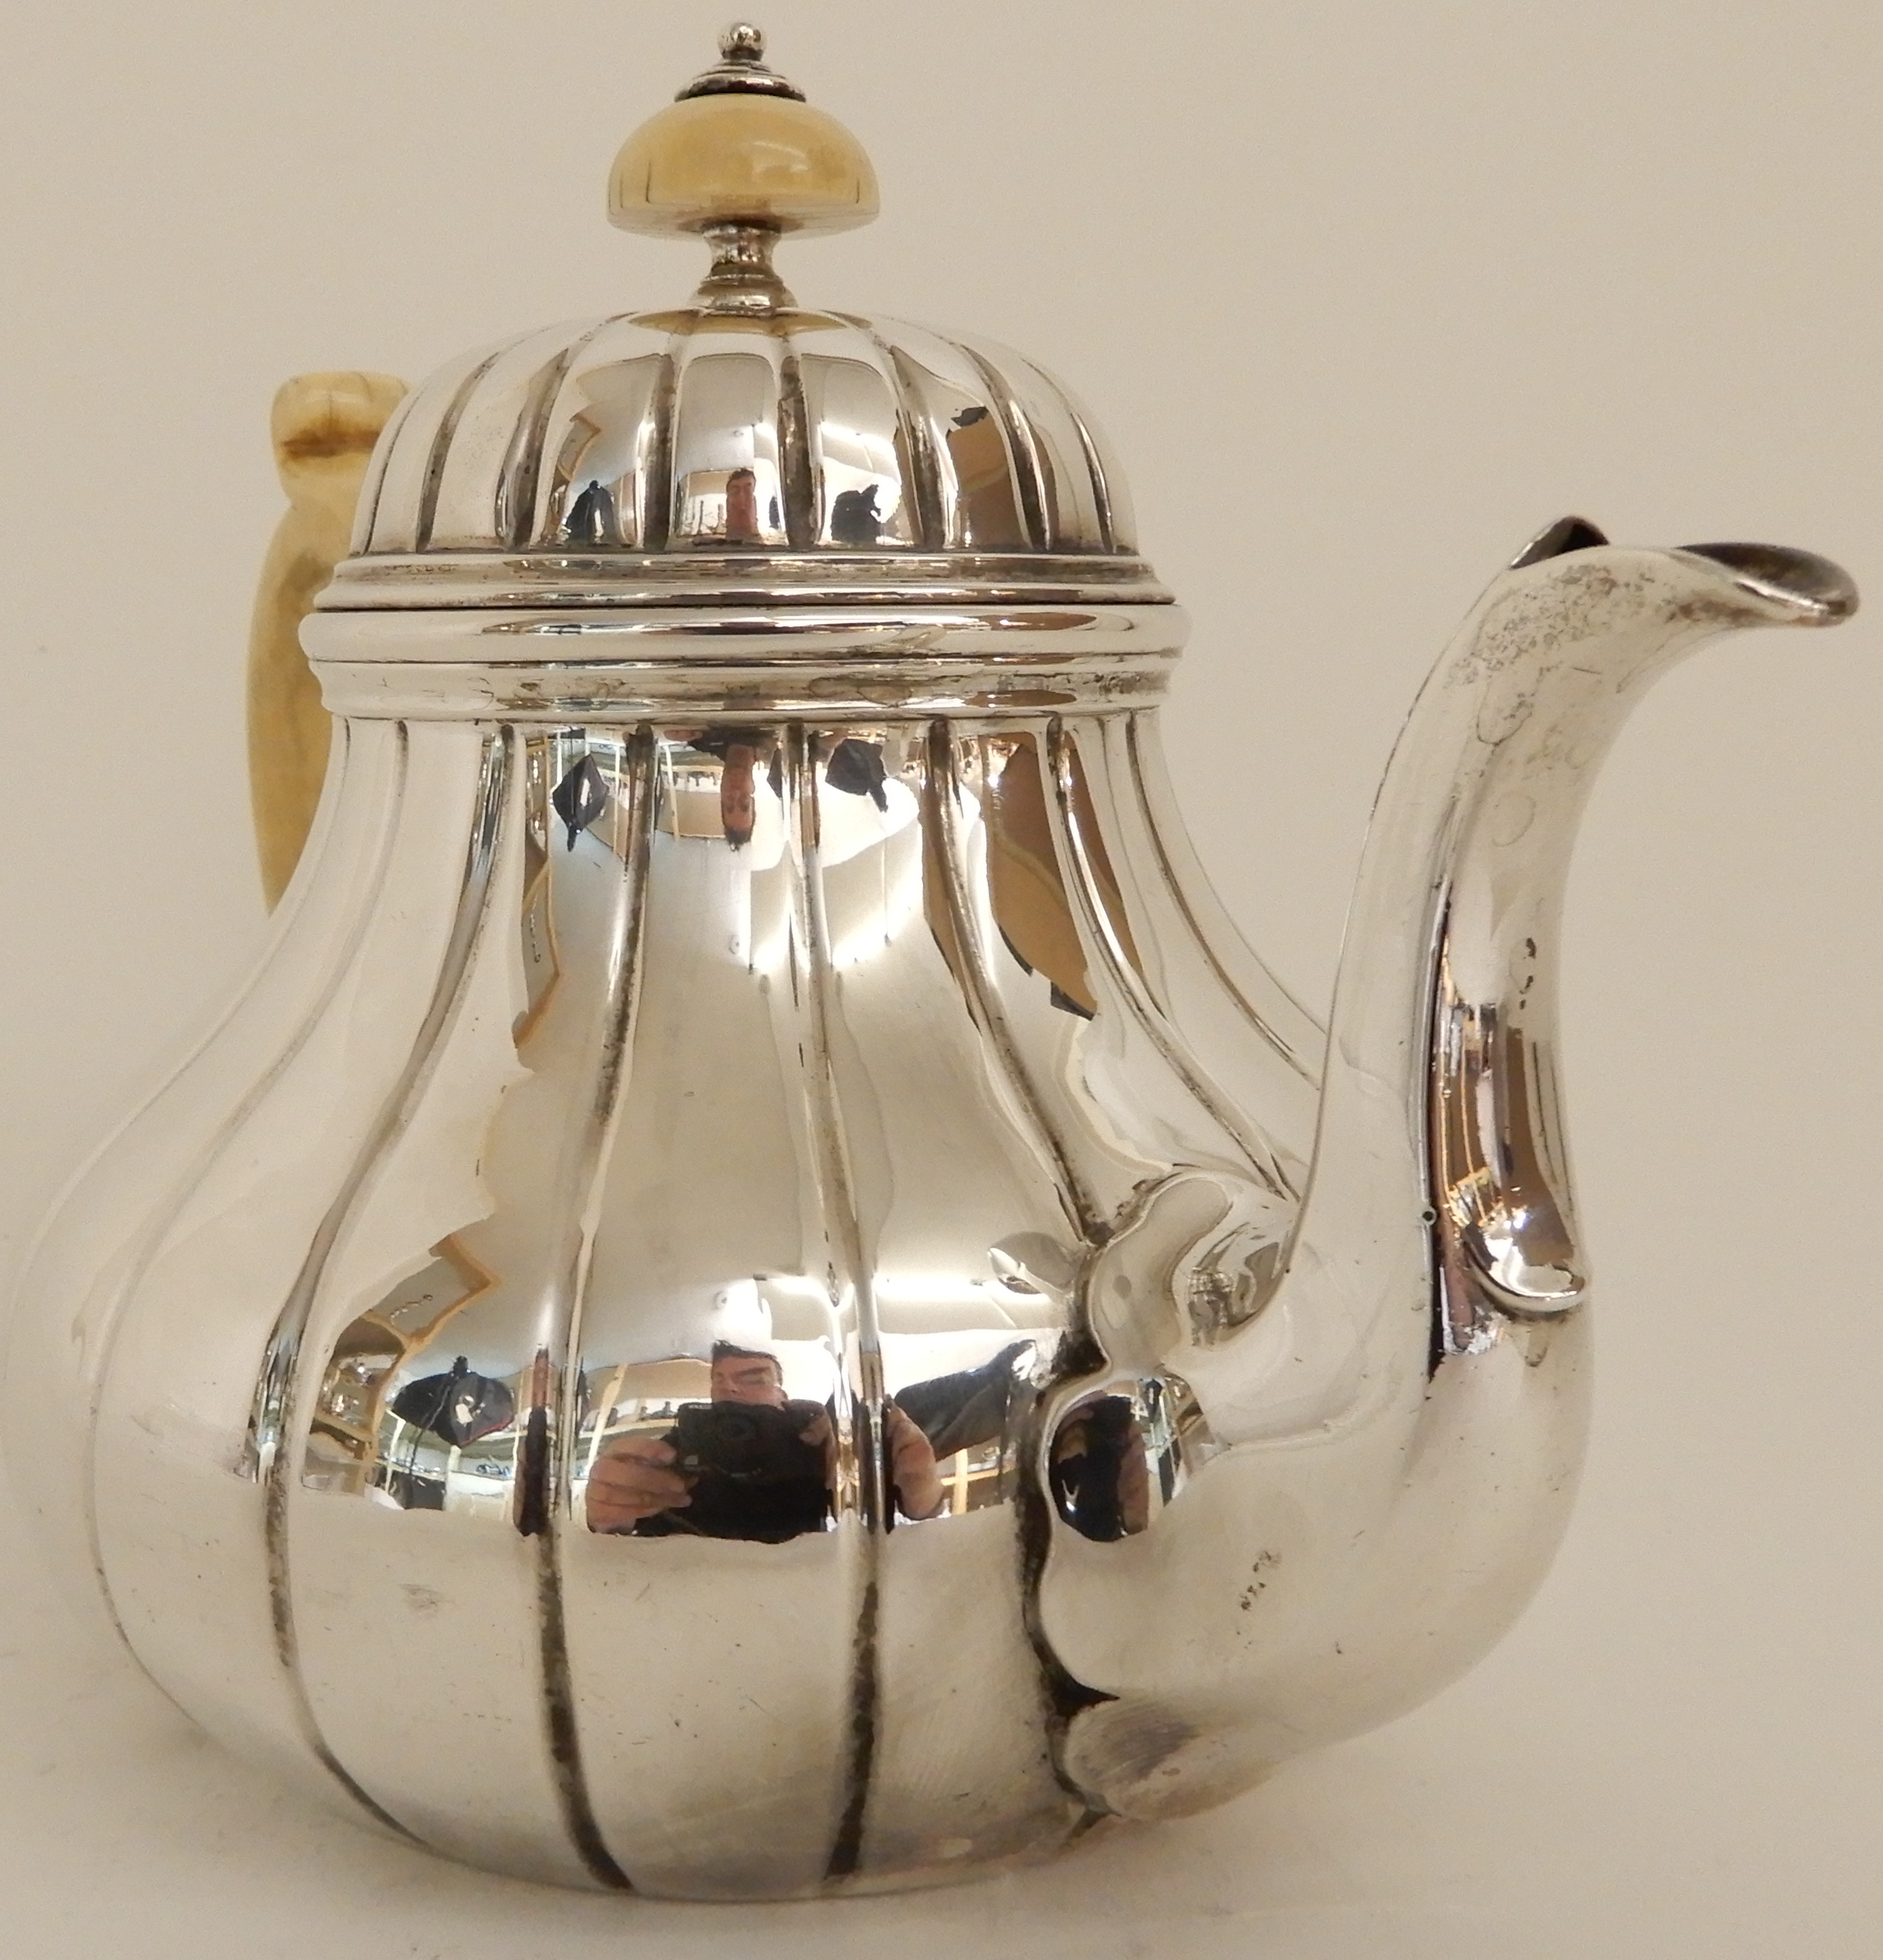 Lot 164 - A VICTORIAN SILVER TEAPOT by Robert Garrard, London 1855, of bulbous baluster form with ribbed body,